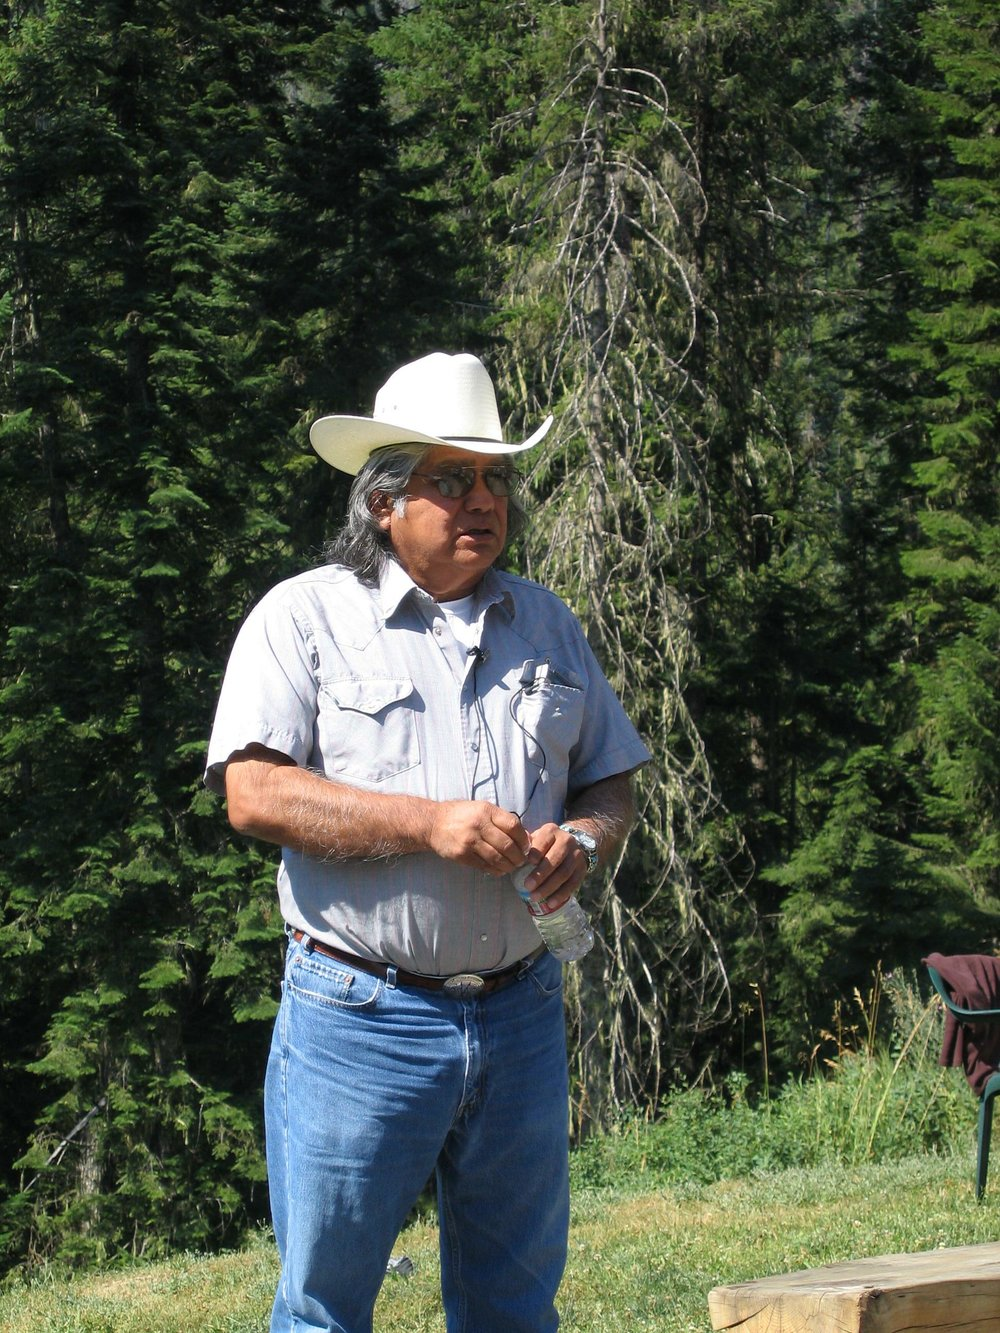 Lewis & Clark, RIVER OF NO RETURN Summer Tour 2019:  Allen Pinkham Sr. ~ Respected tribal statesman of the Nez Perce nation will be your lead scholar for the duration of your tour. Great great grand nephew of Chief Joseph, descendant of Red Bear and Cut Nose both mentioned in the L&C journals. Co-author with Steve Evans LEWIS AND CLARK AMONG THE NEZ PERCE  Strangers in the Land of the Nimiipuu